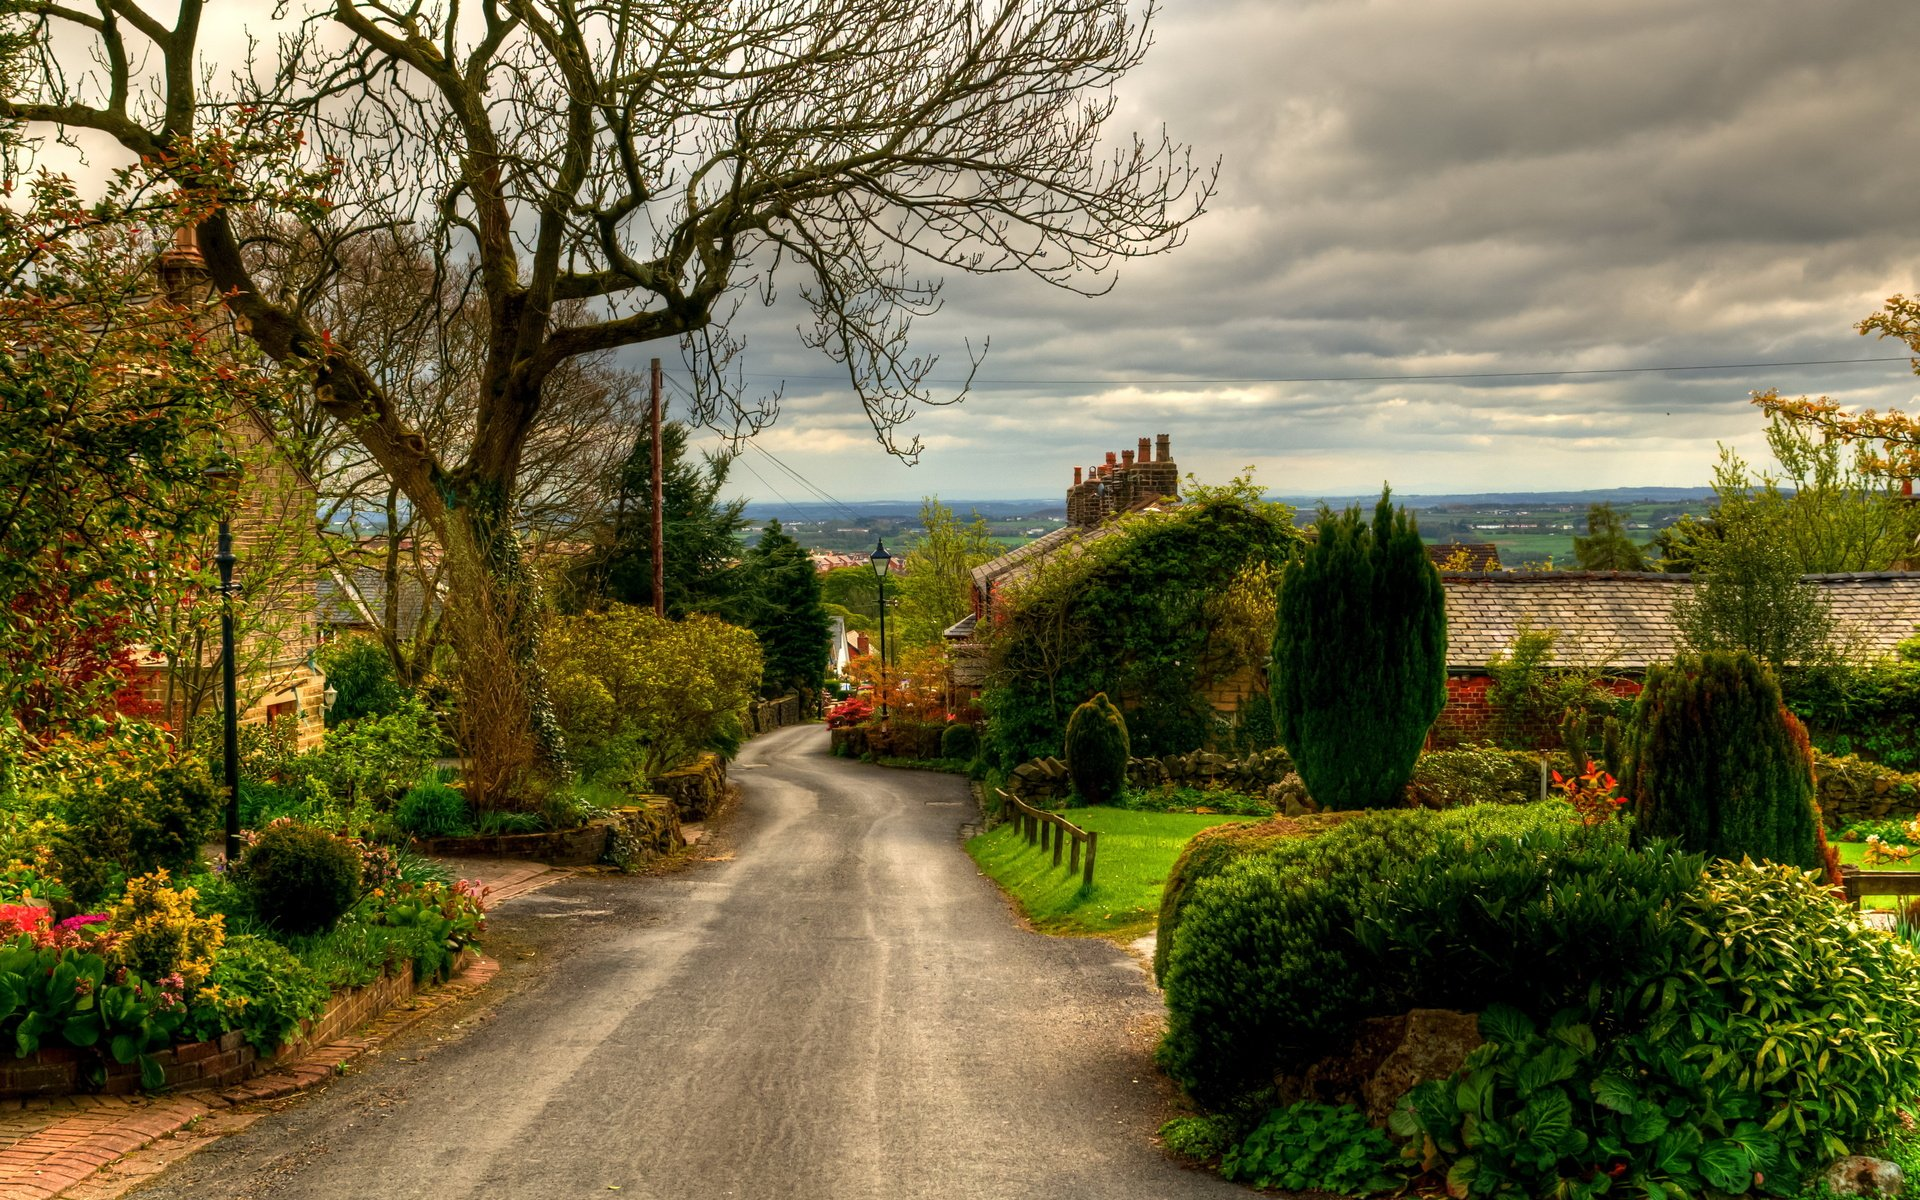 UK Road England Horwich Trees Shrubs nature landscapes town village 1920x1200